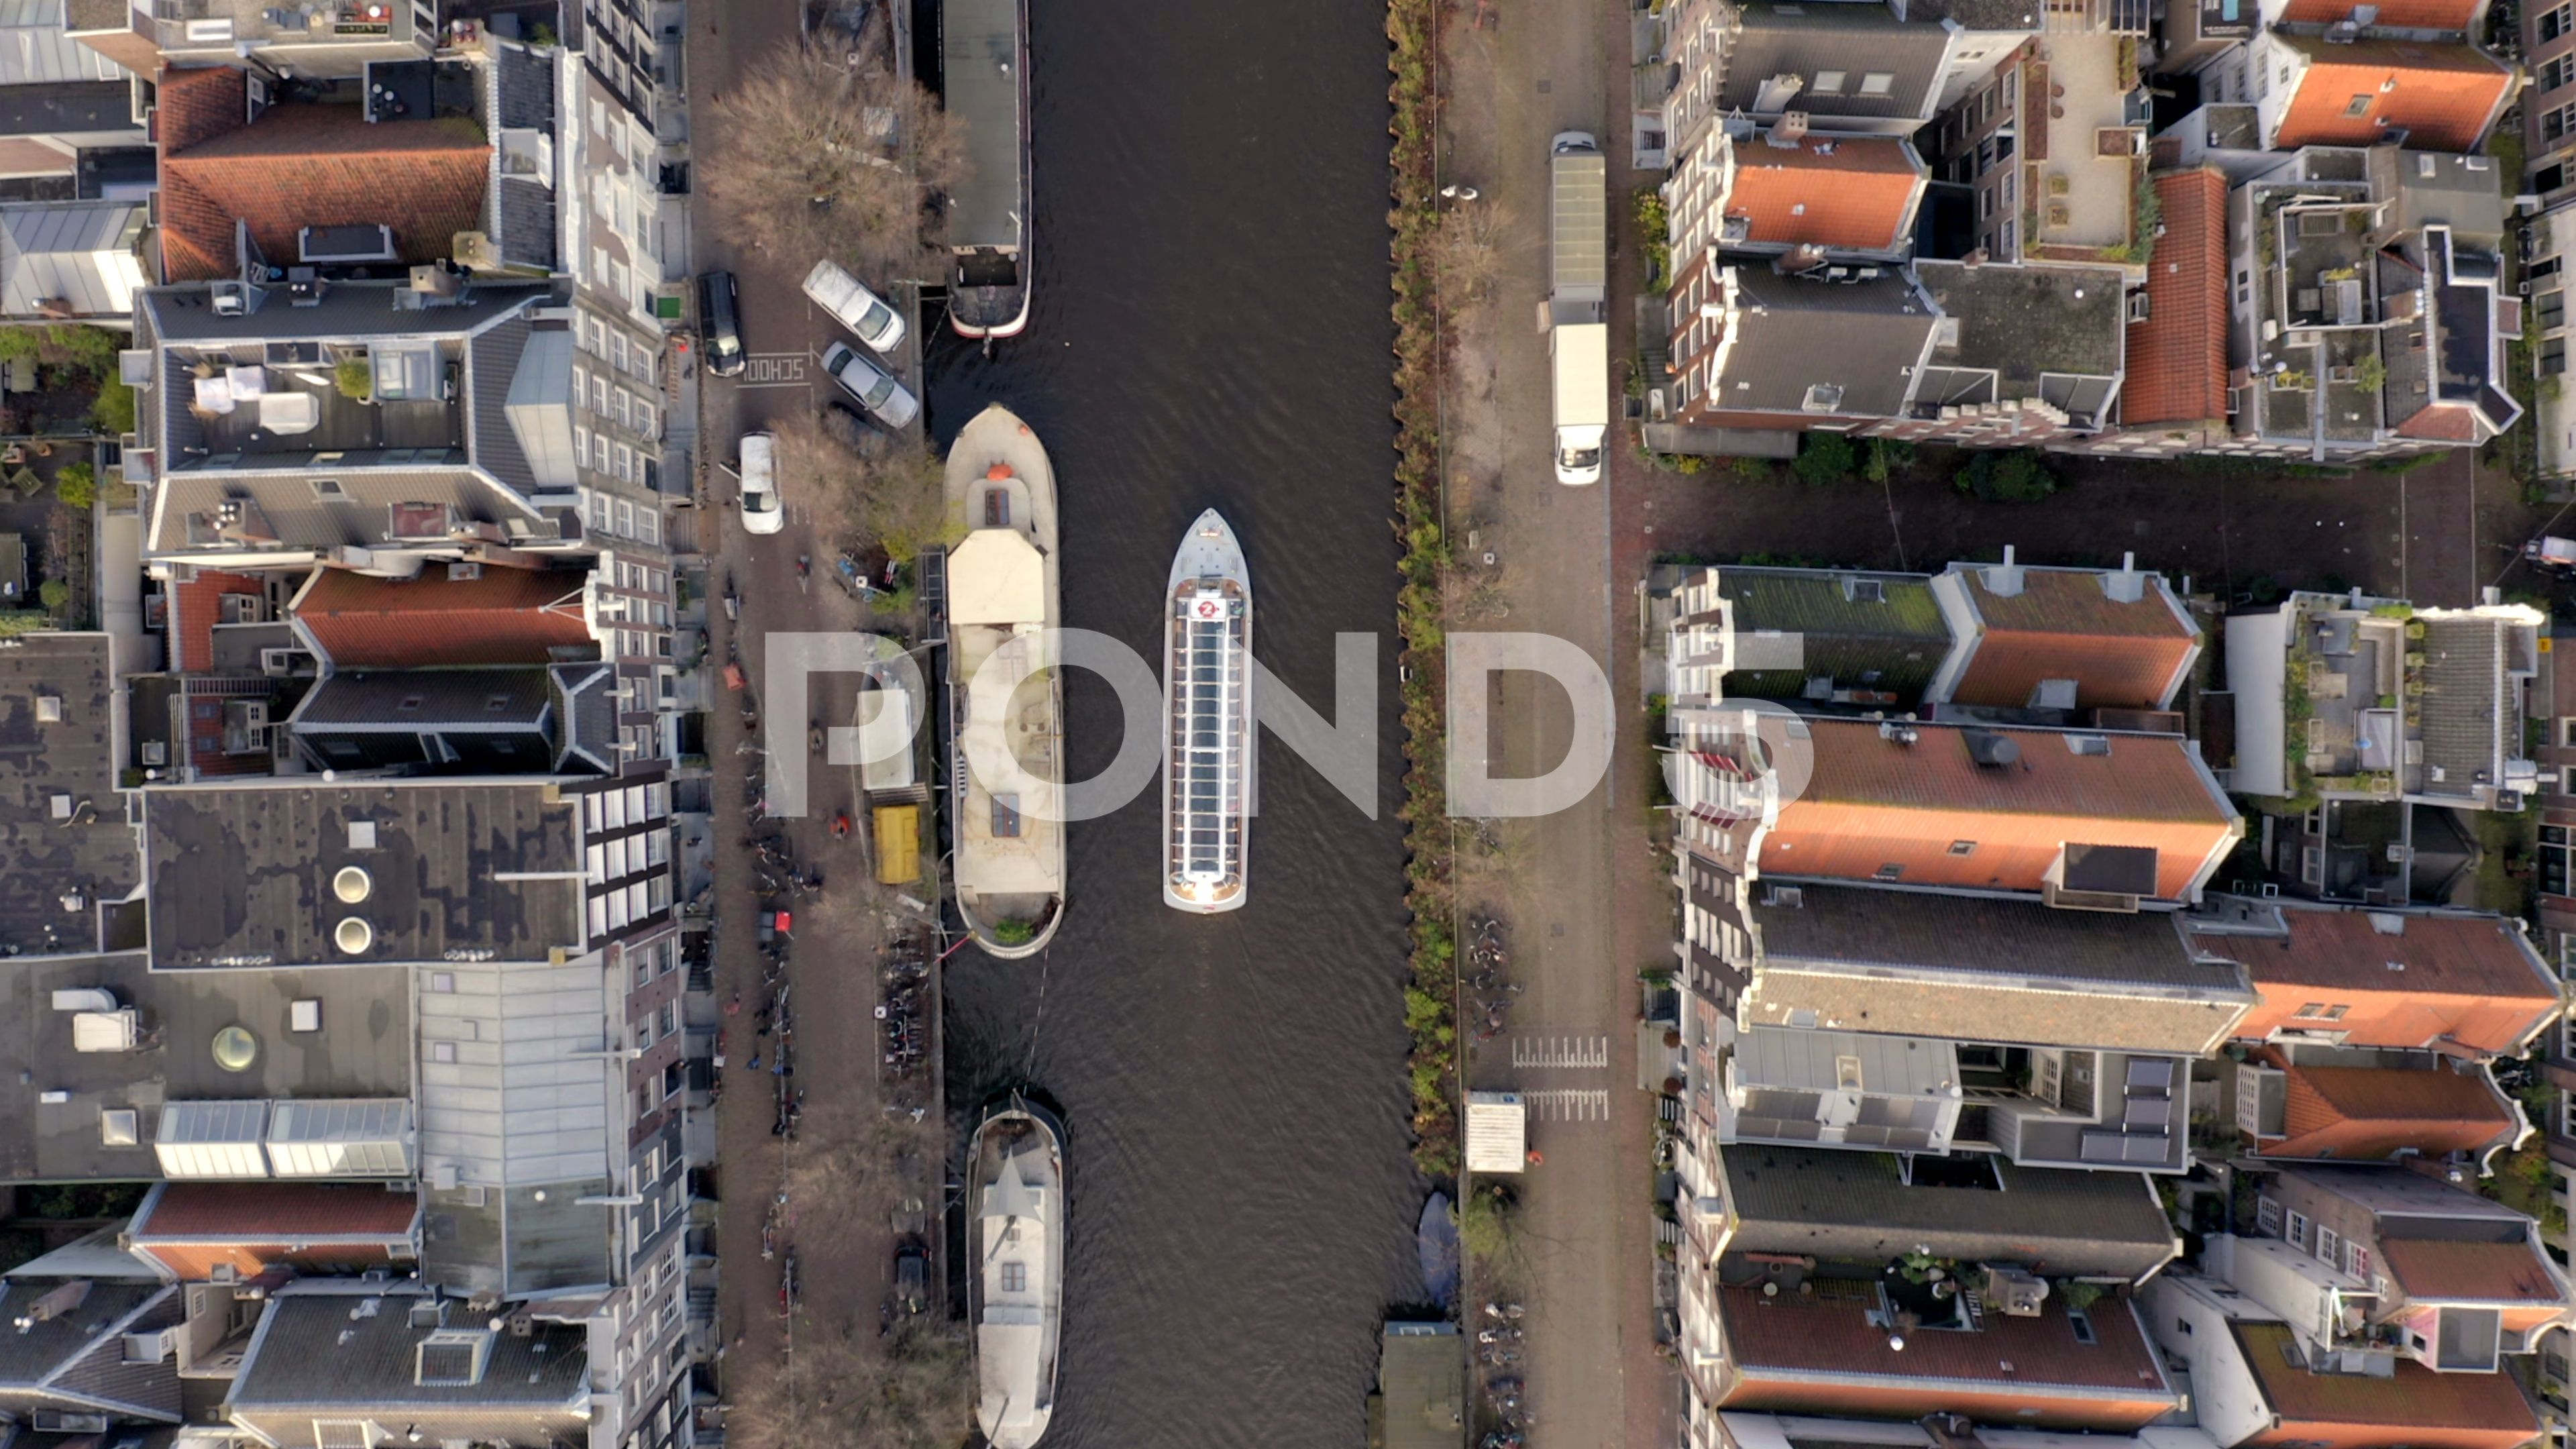 Canal Boat Tour in Amsterdam Amongst Riverside Houses Birds Eye View Stock Footage AmsterdamRiversideTourCanal